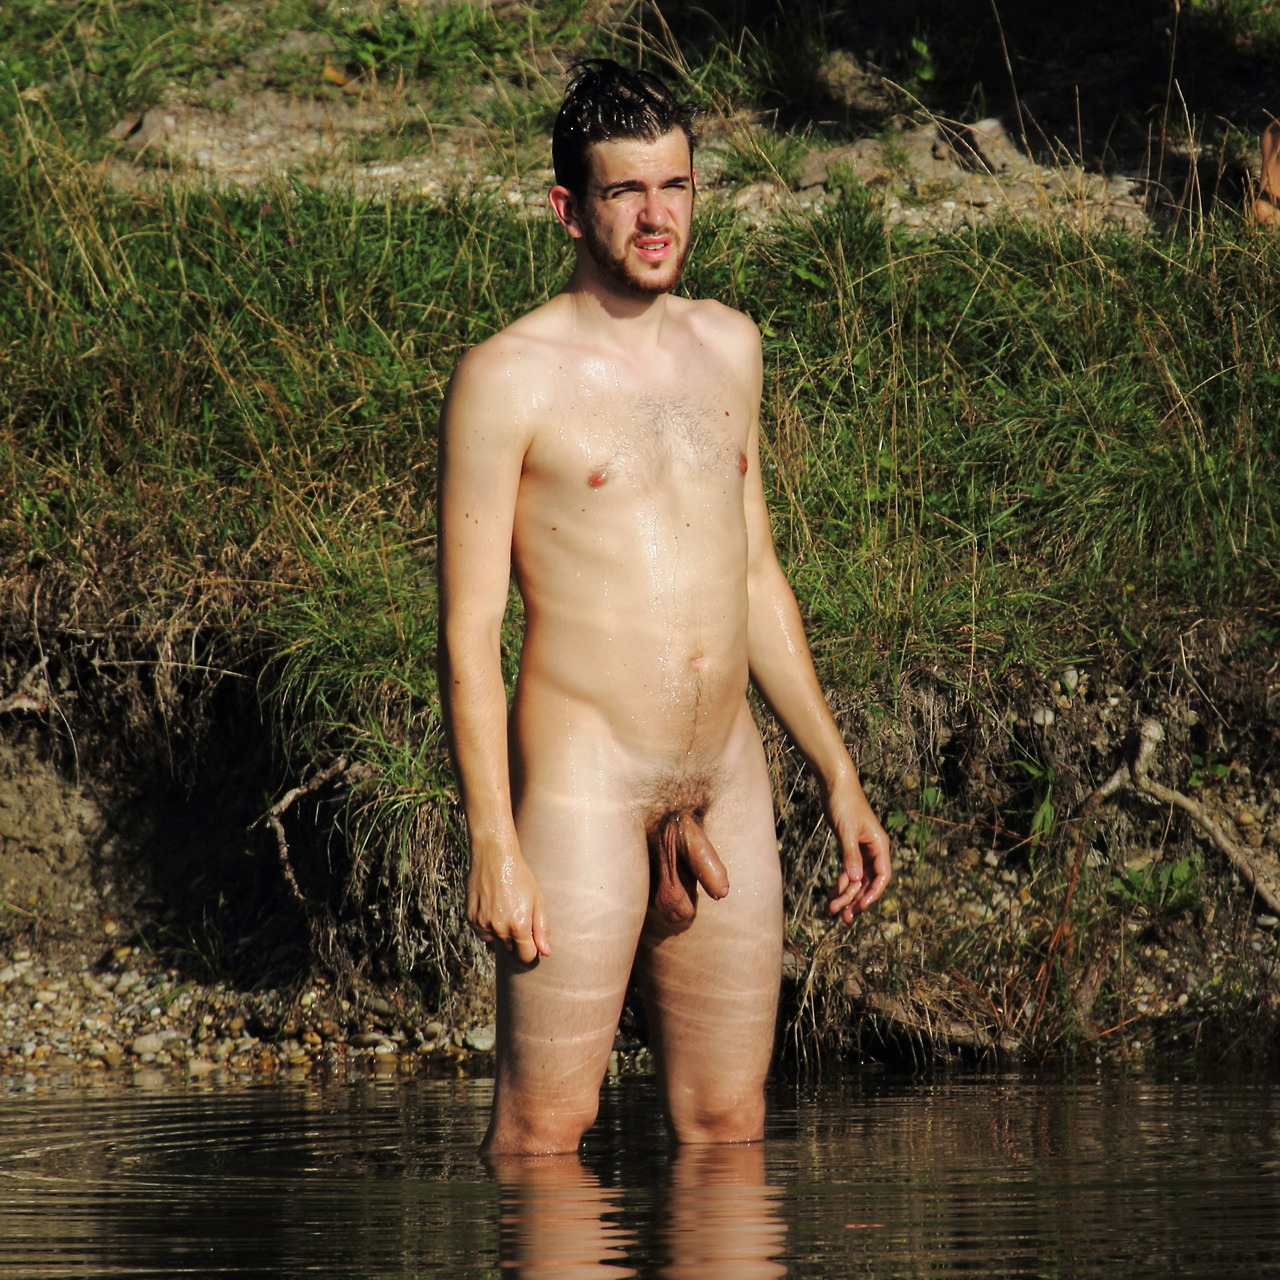 Lake sex men porn casually